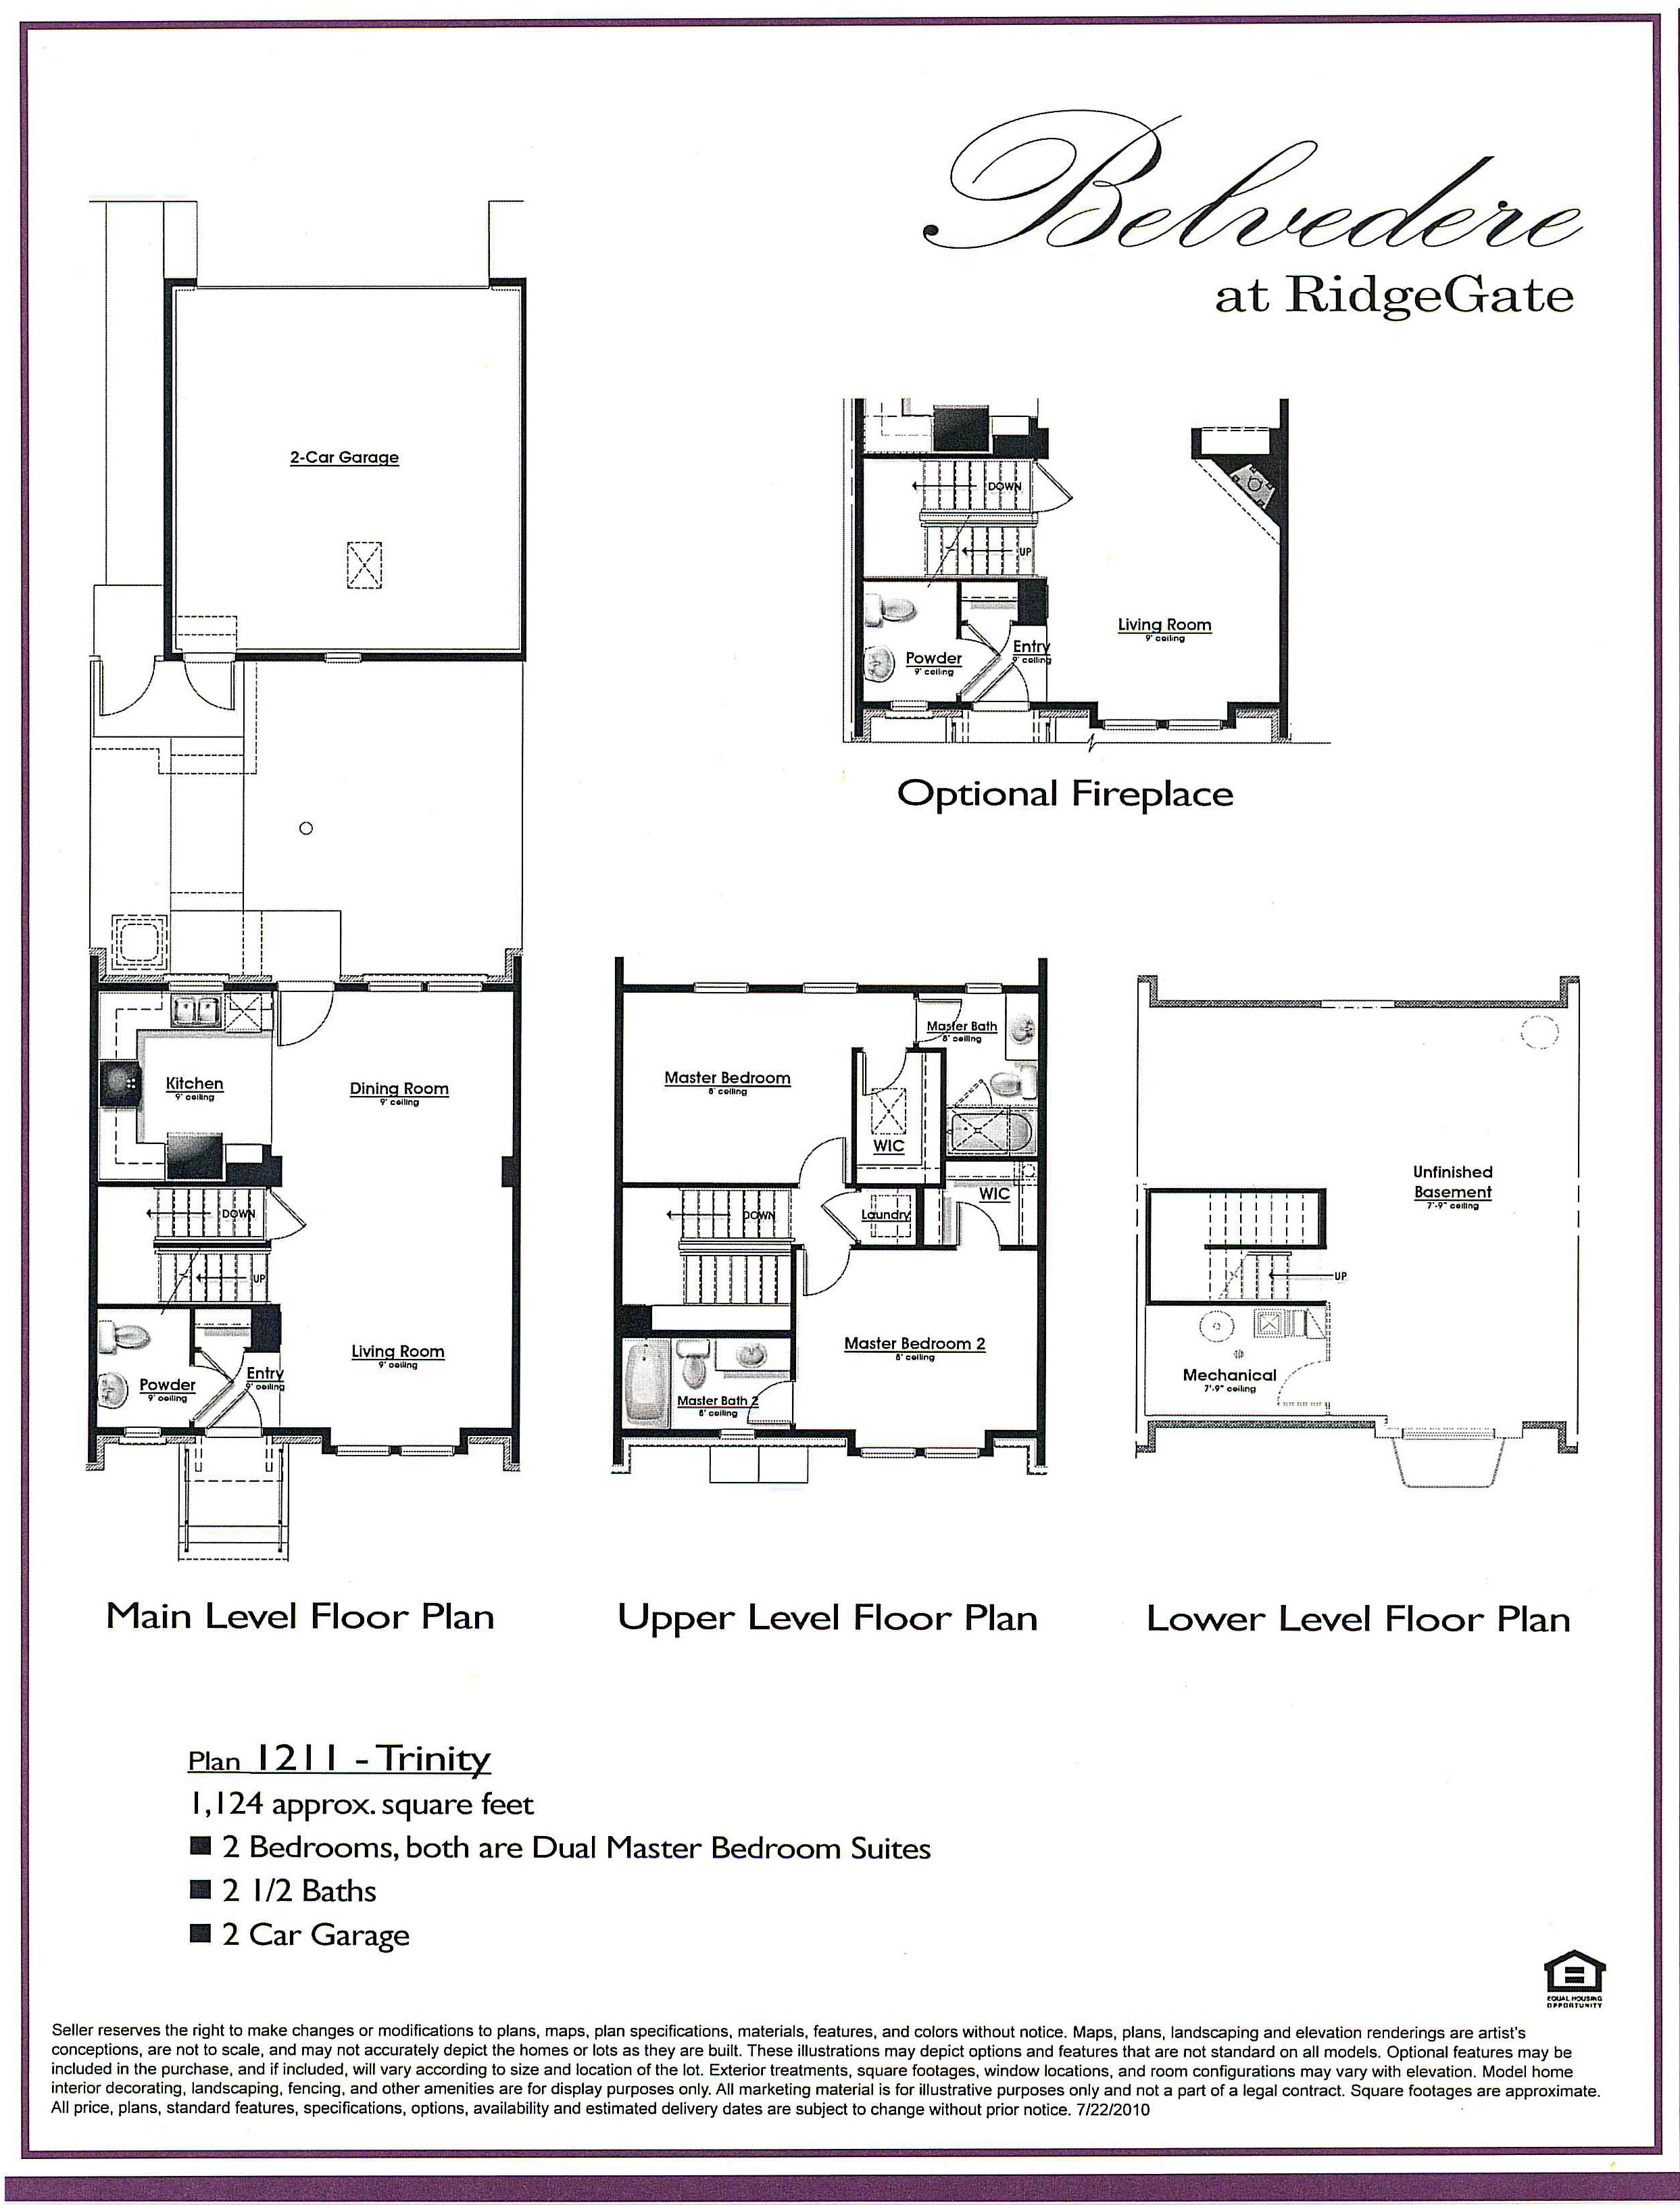 Plan 1211 Trinity at Belvedere in RidgeGate of Lone Tree CO